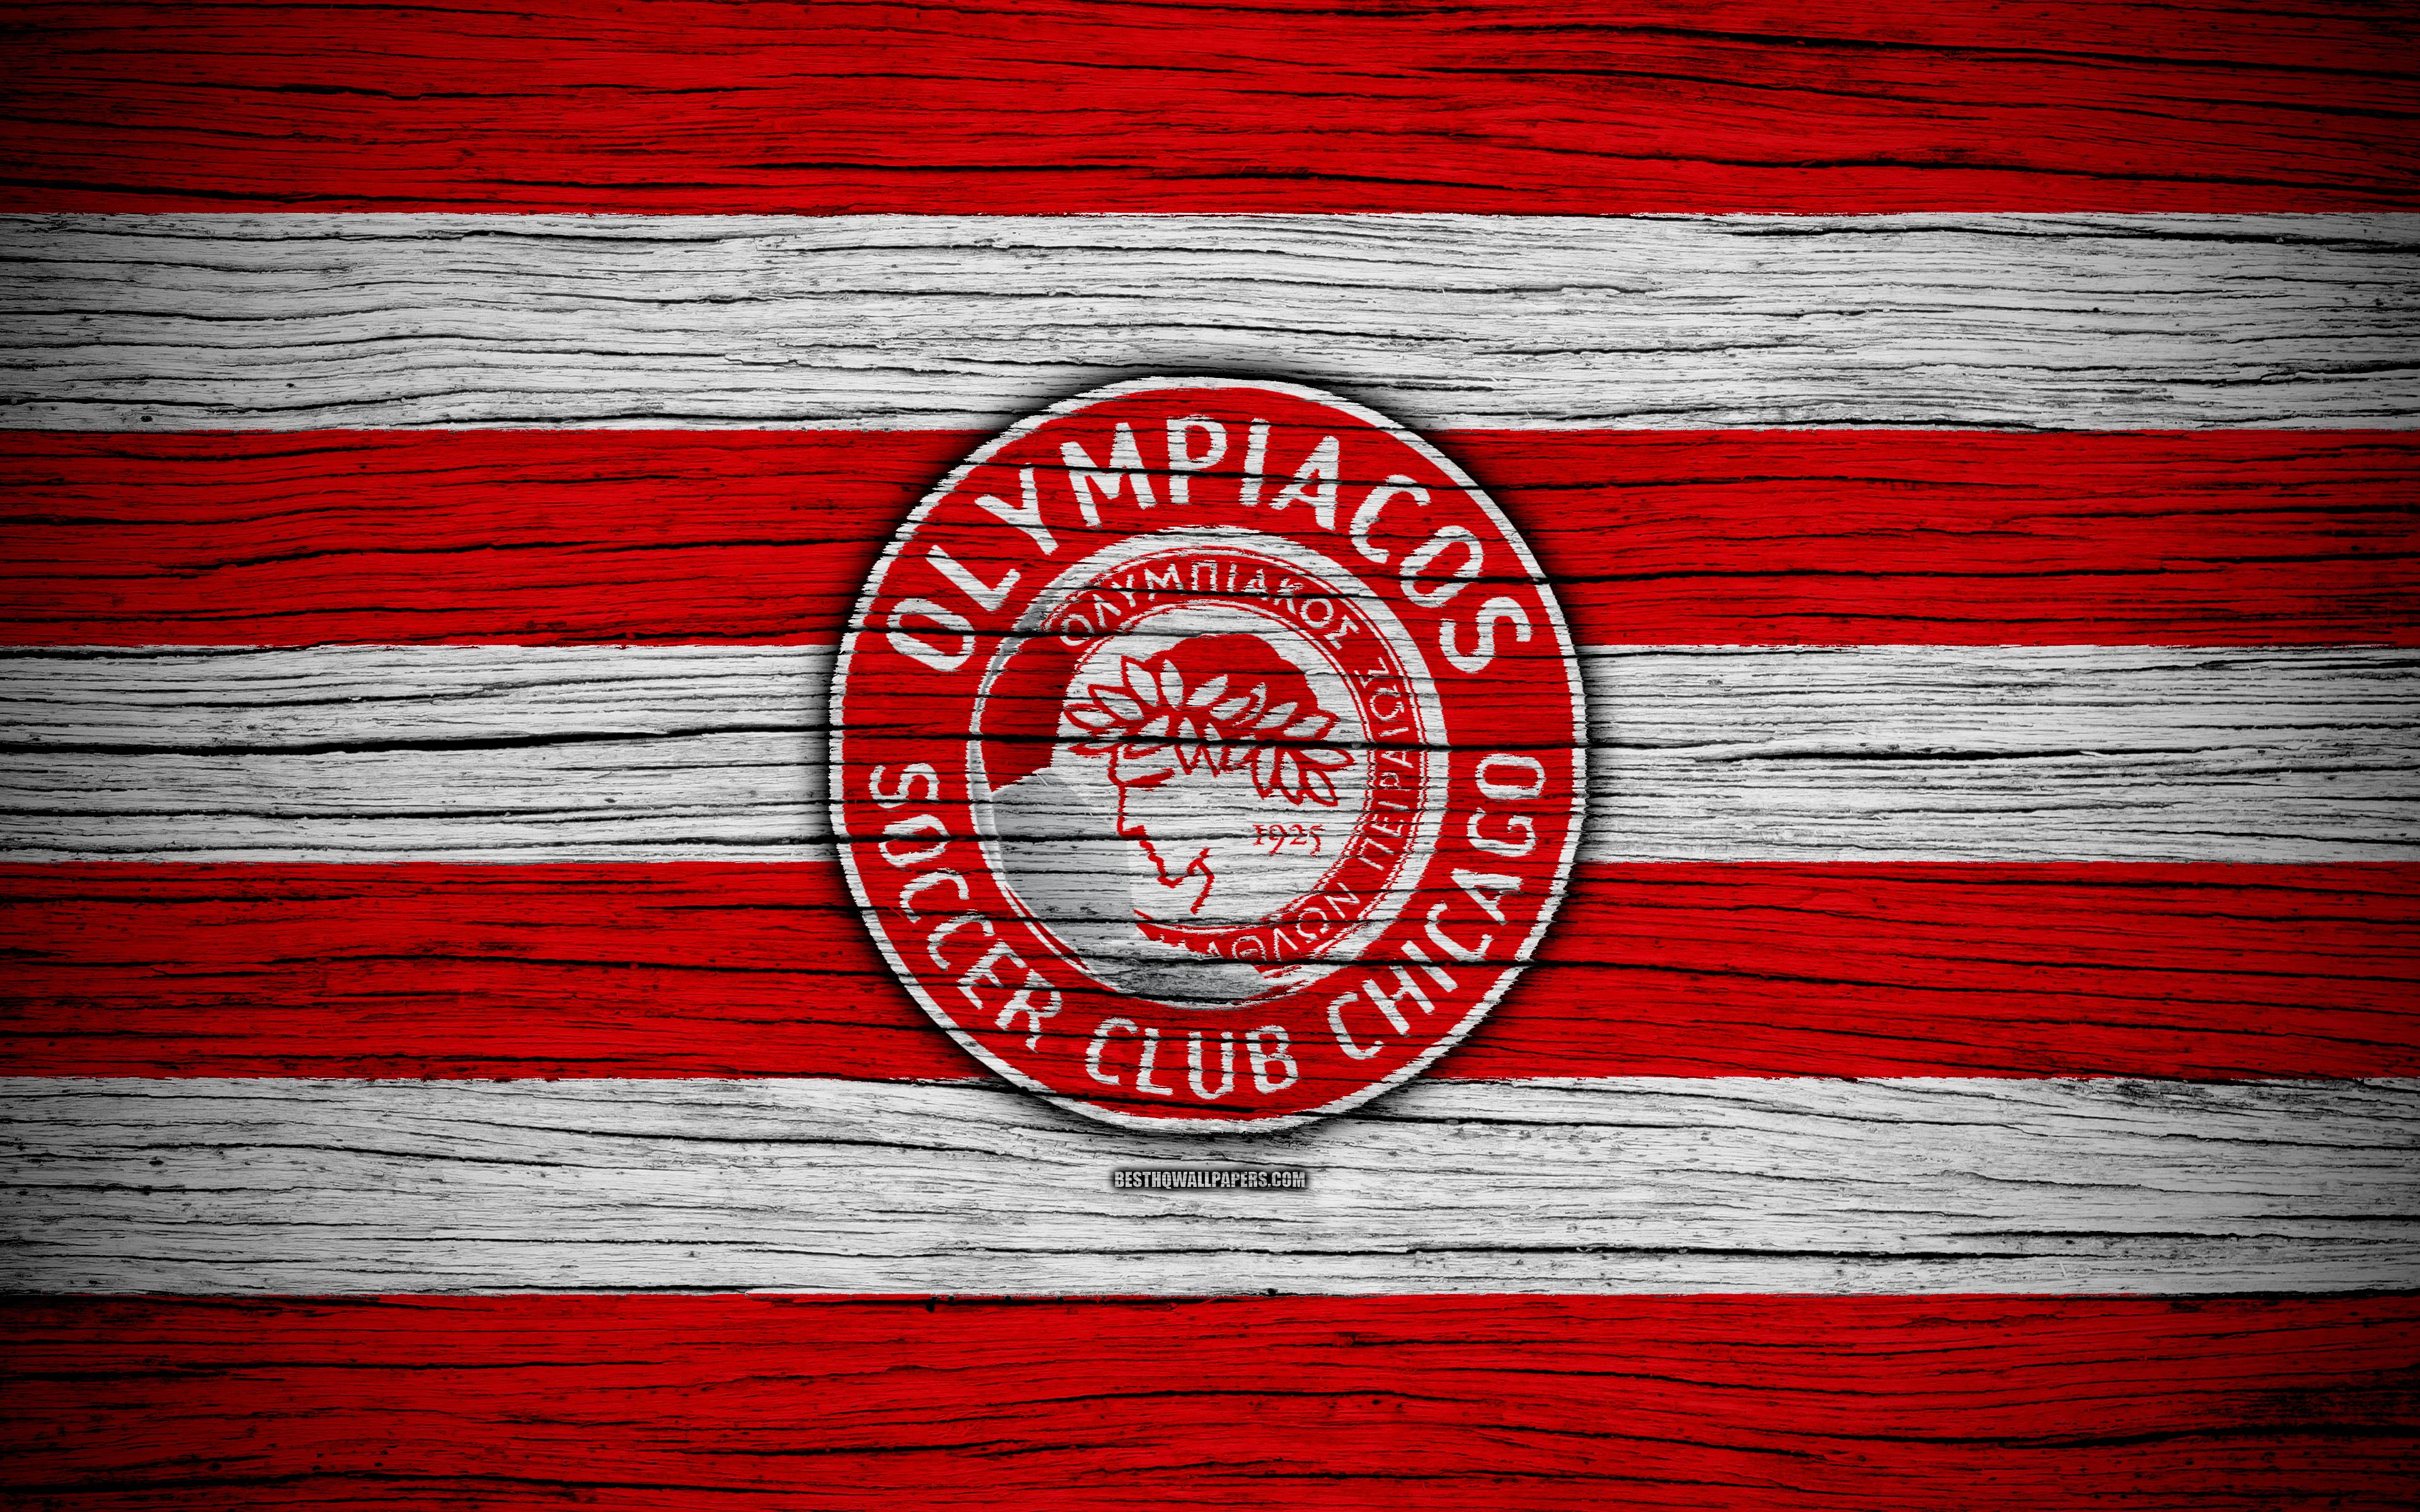 Olympiacos F.C. Wallpaper 21 - 3840 X 2400 | stmed.net